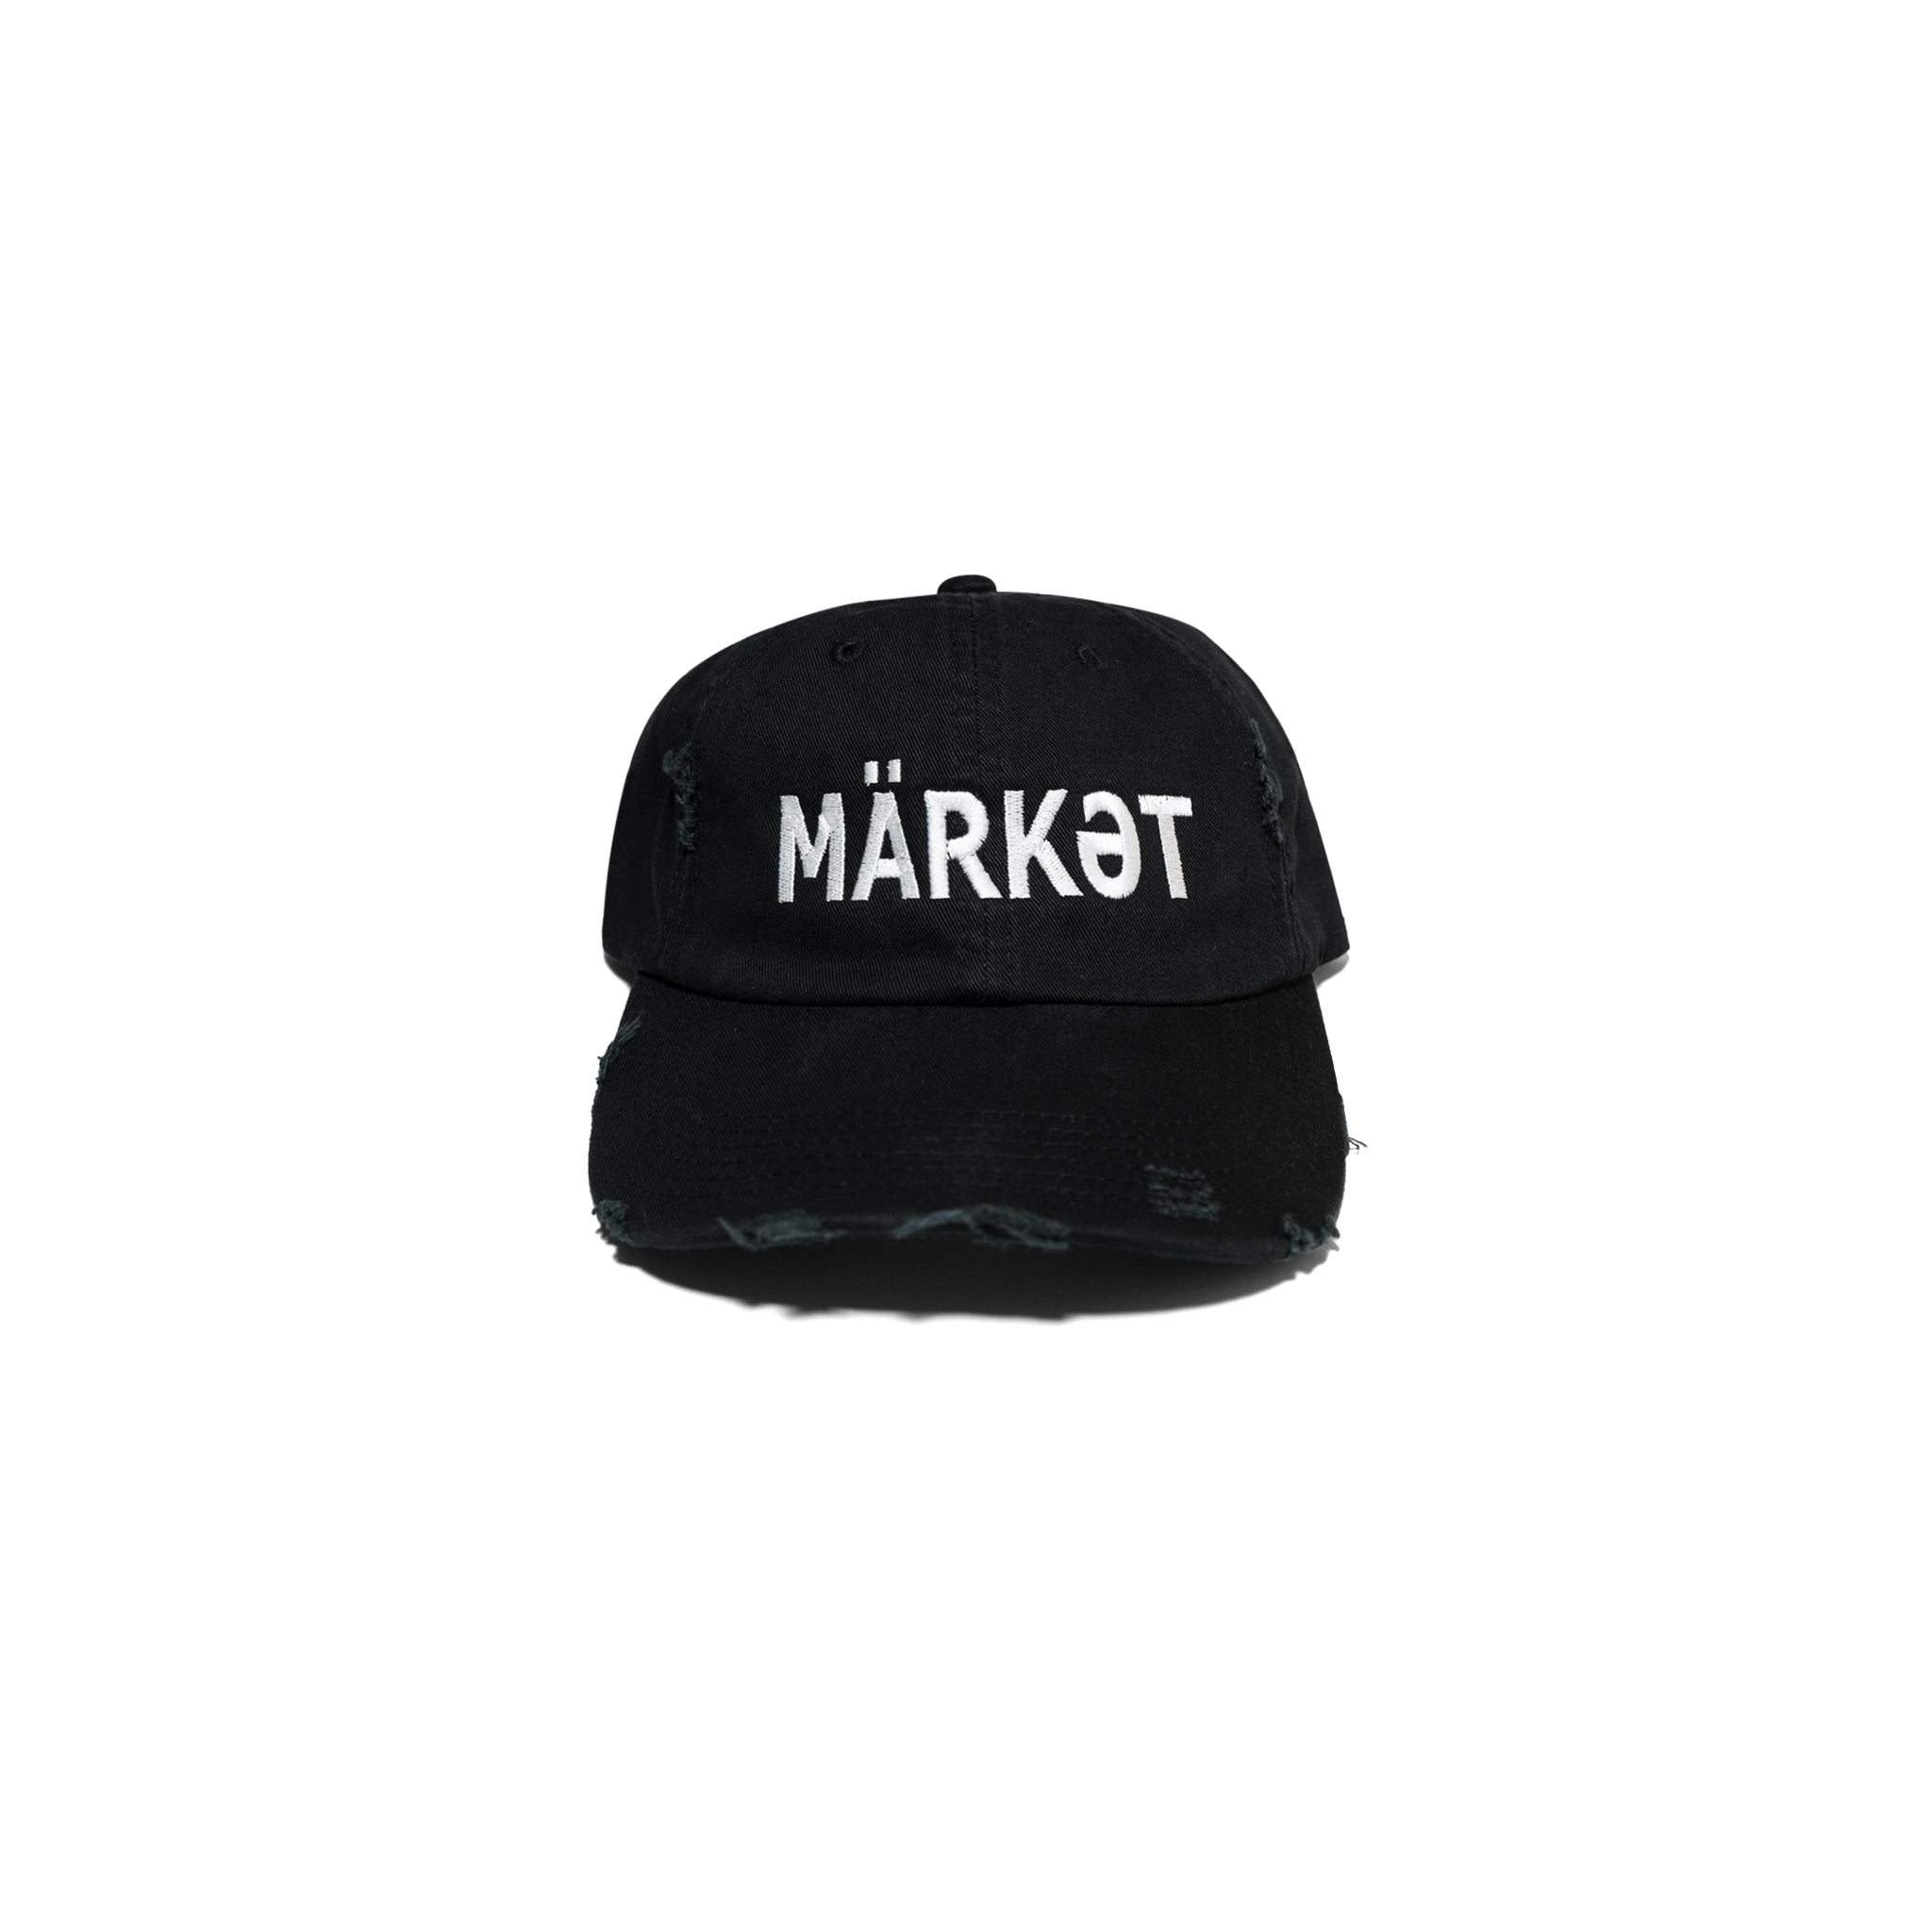 Märkət Distressed Cap